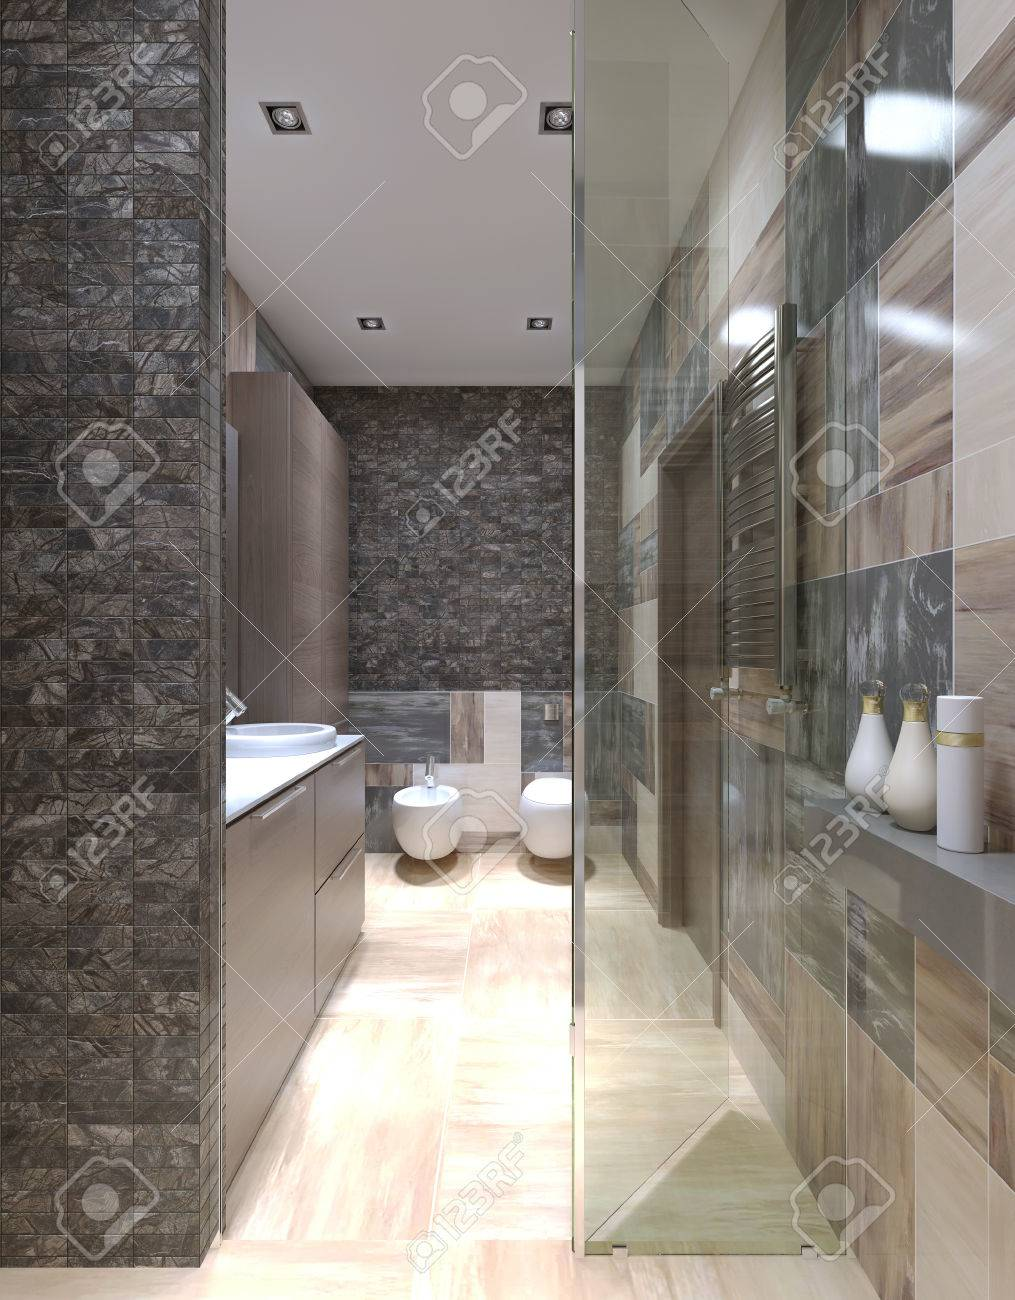 Contemporary Bathroom Design With Using Of Small Tiles On Walls, View From  The Shower Stall